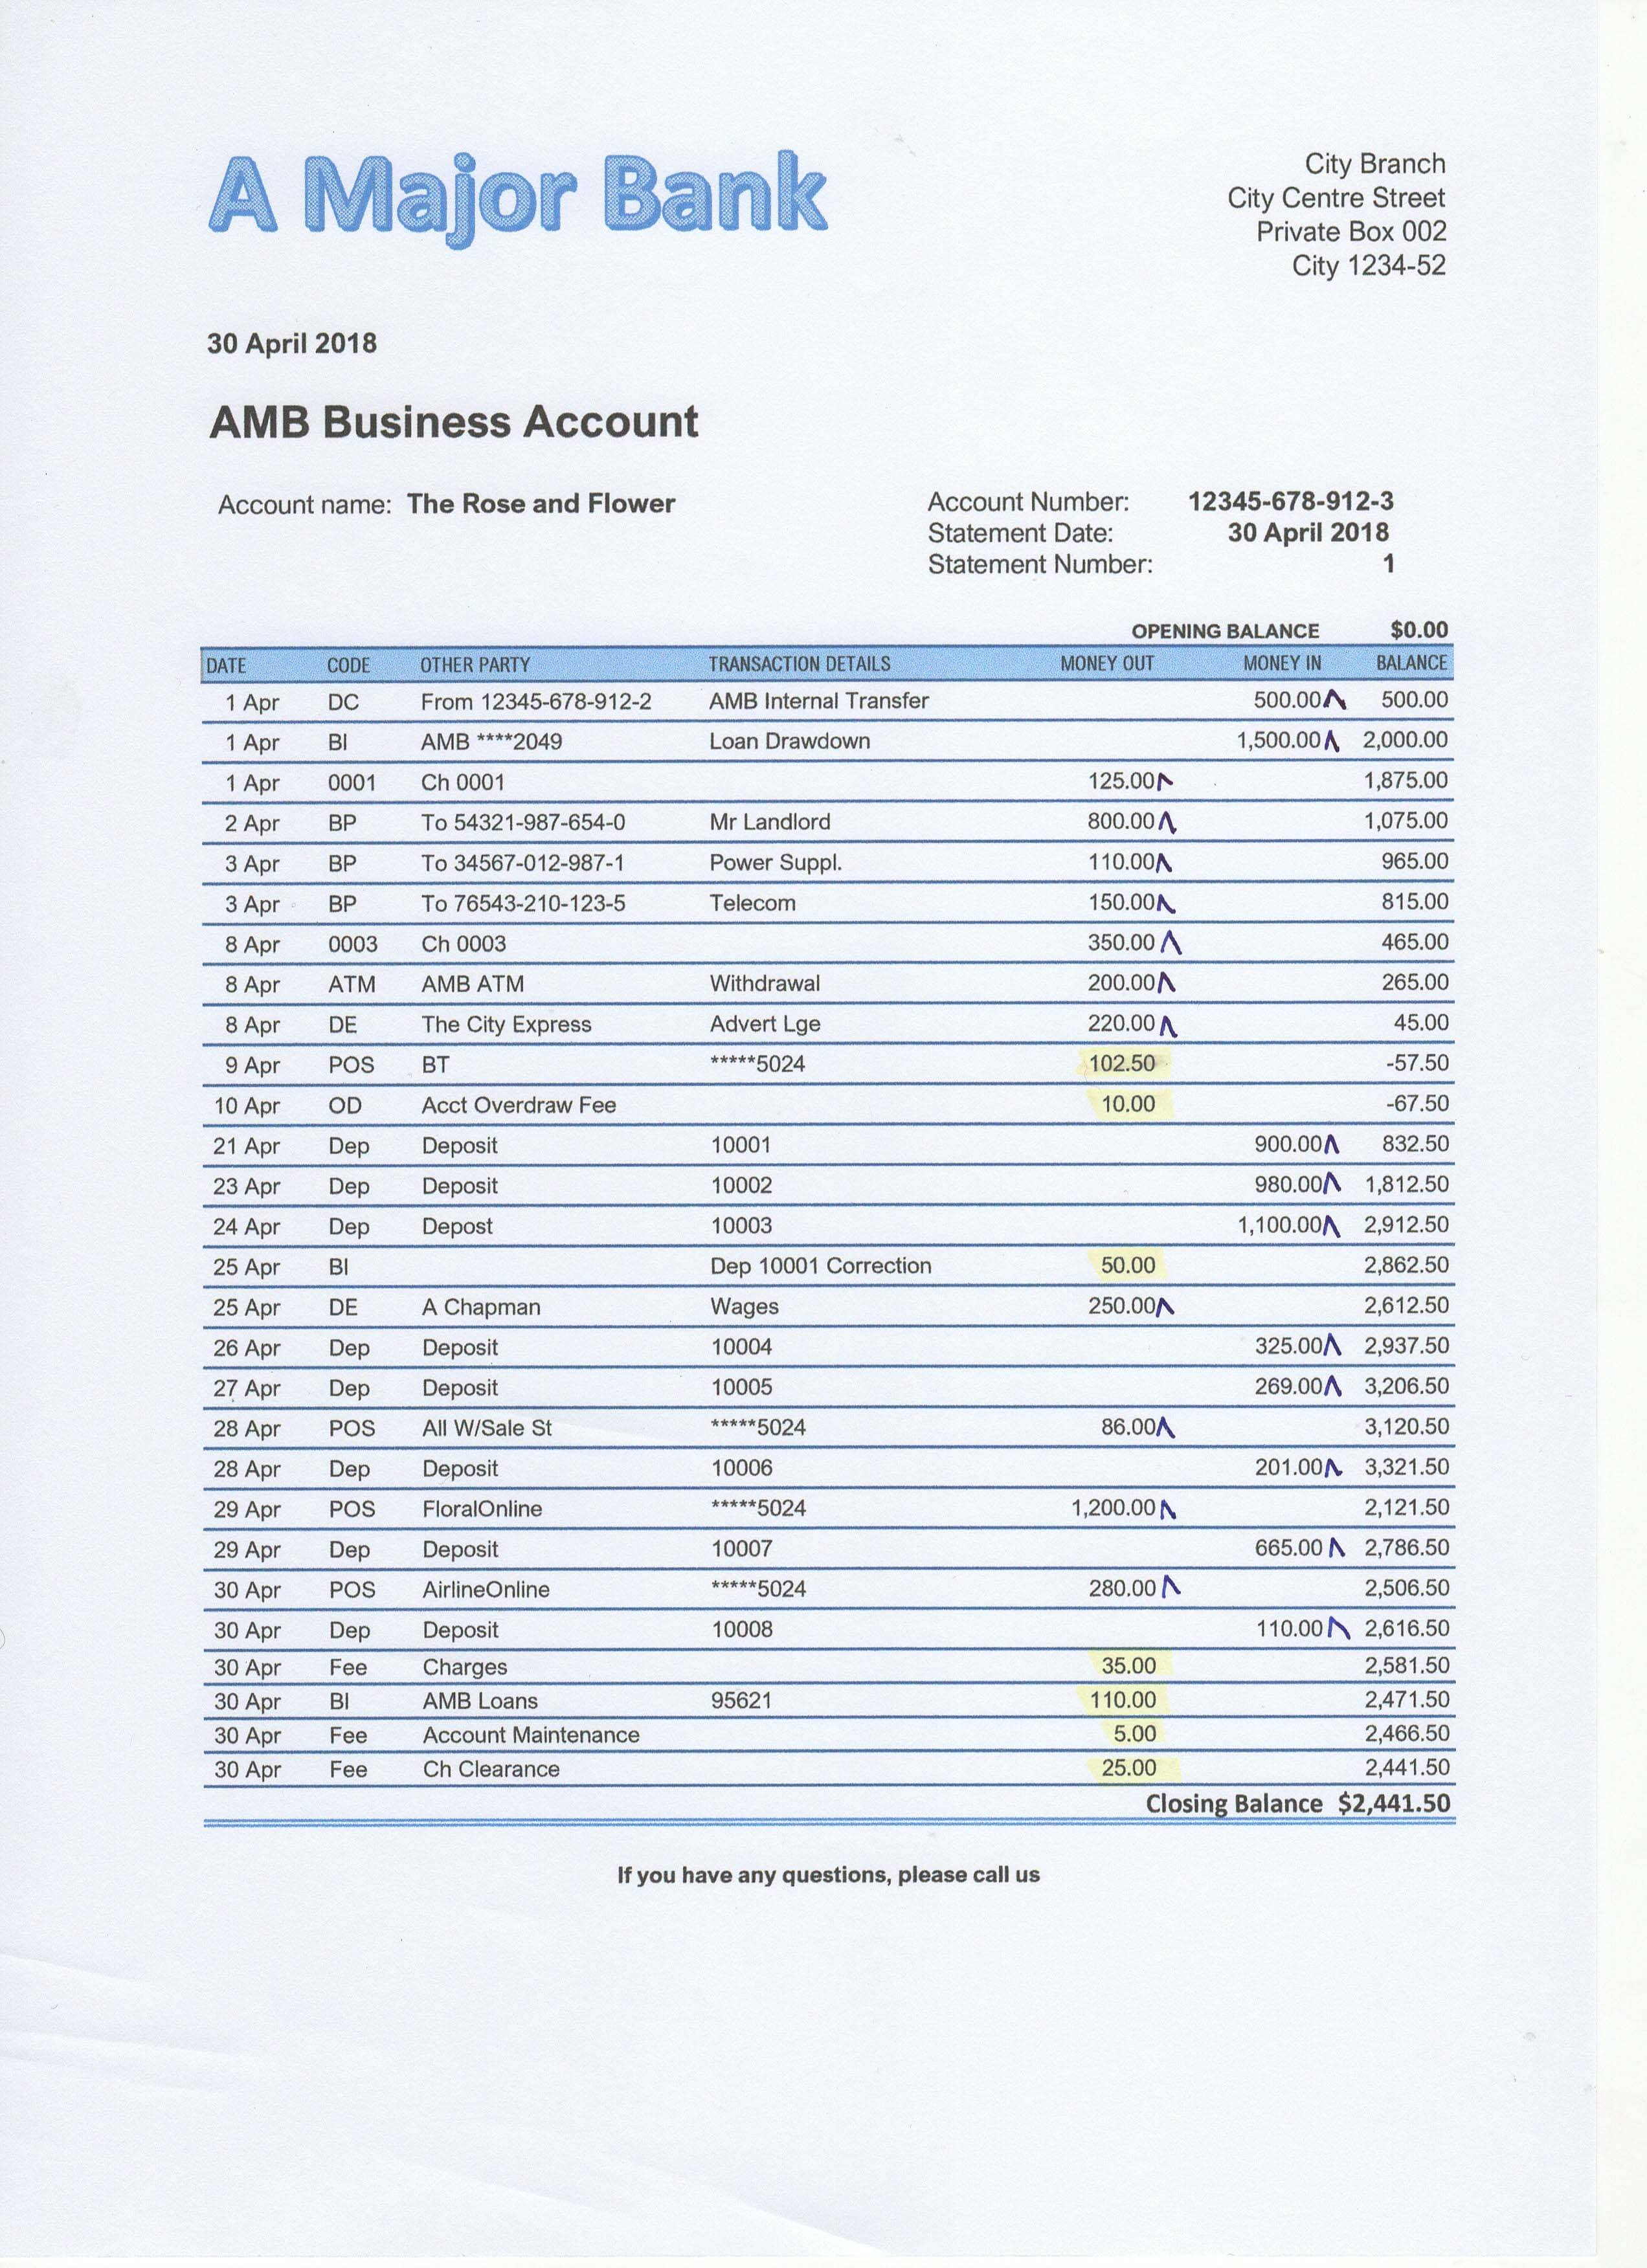 Bank Reconciliation Exercises And Answers Free Downloads With Checking Account Reconciliation Worksheet